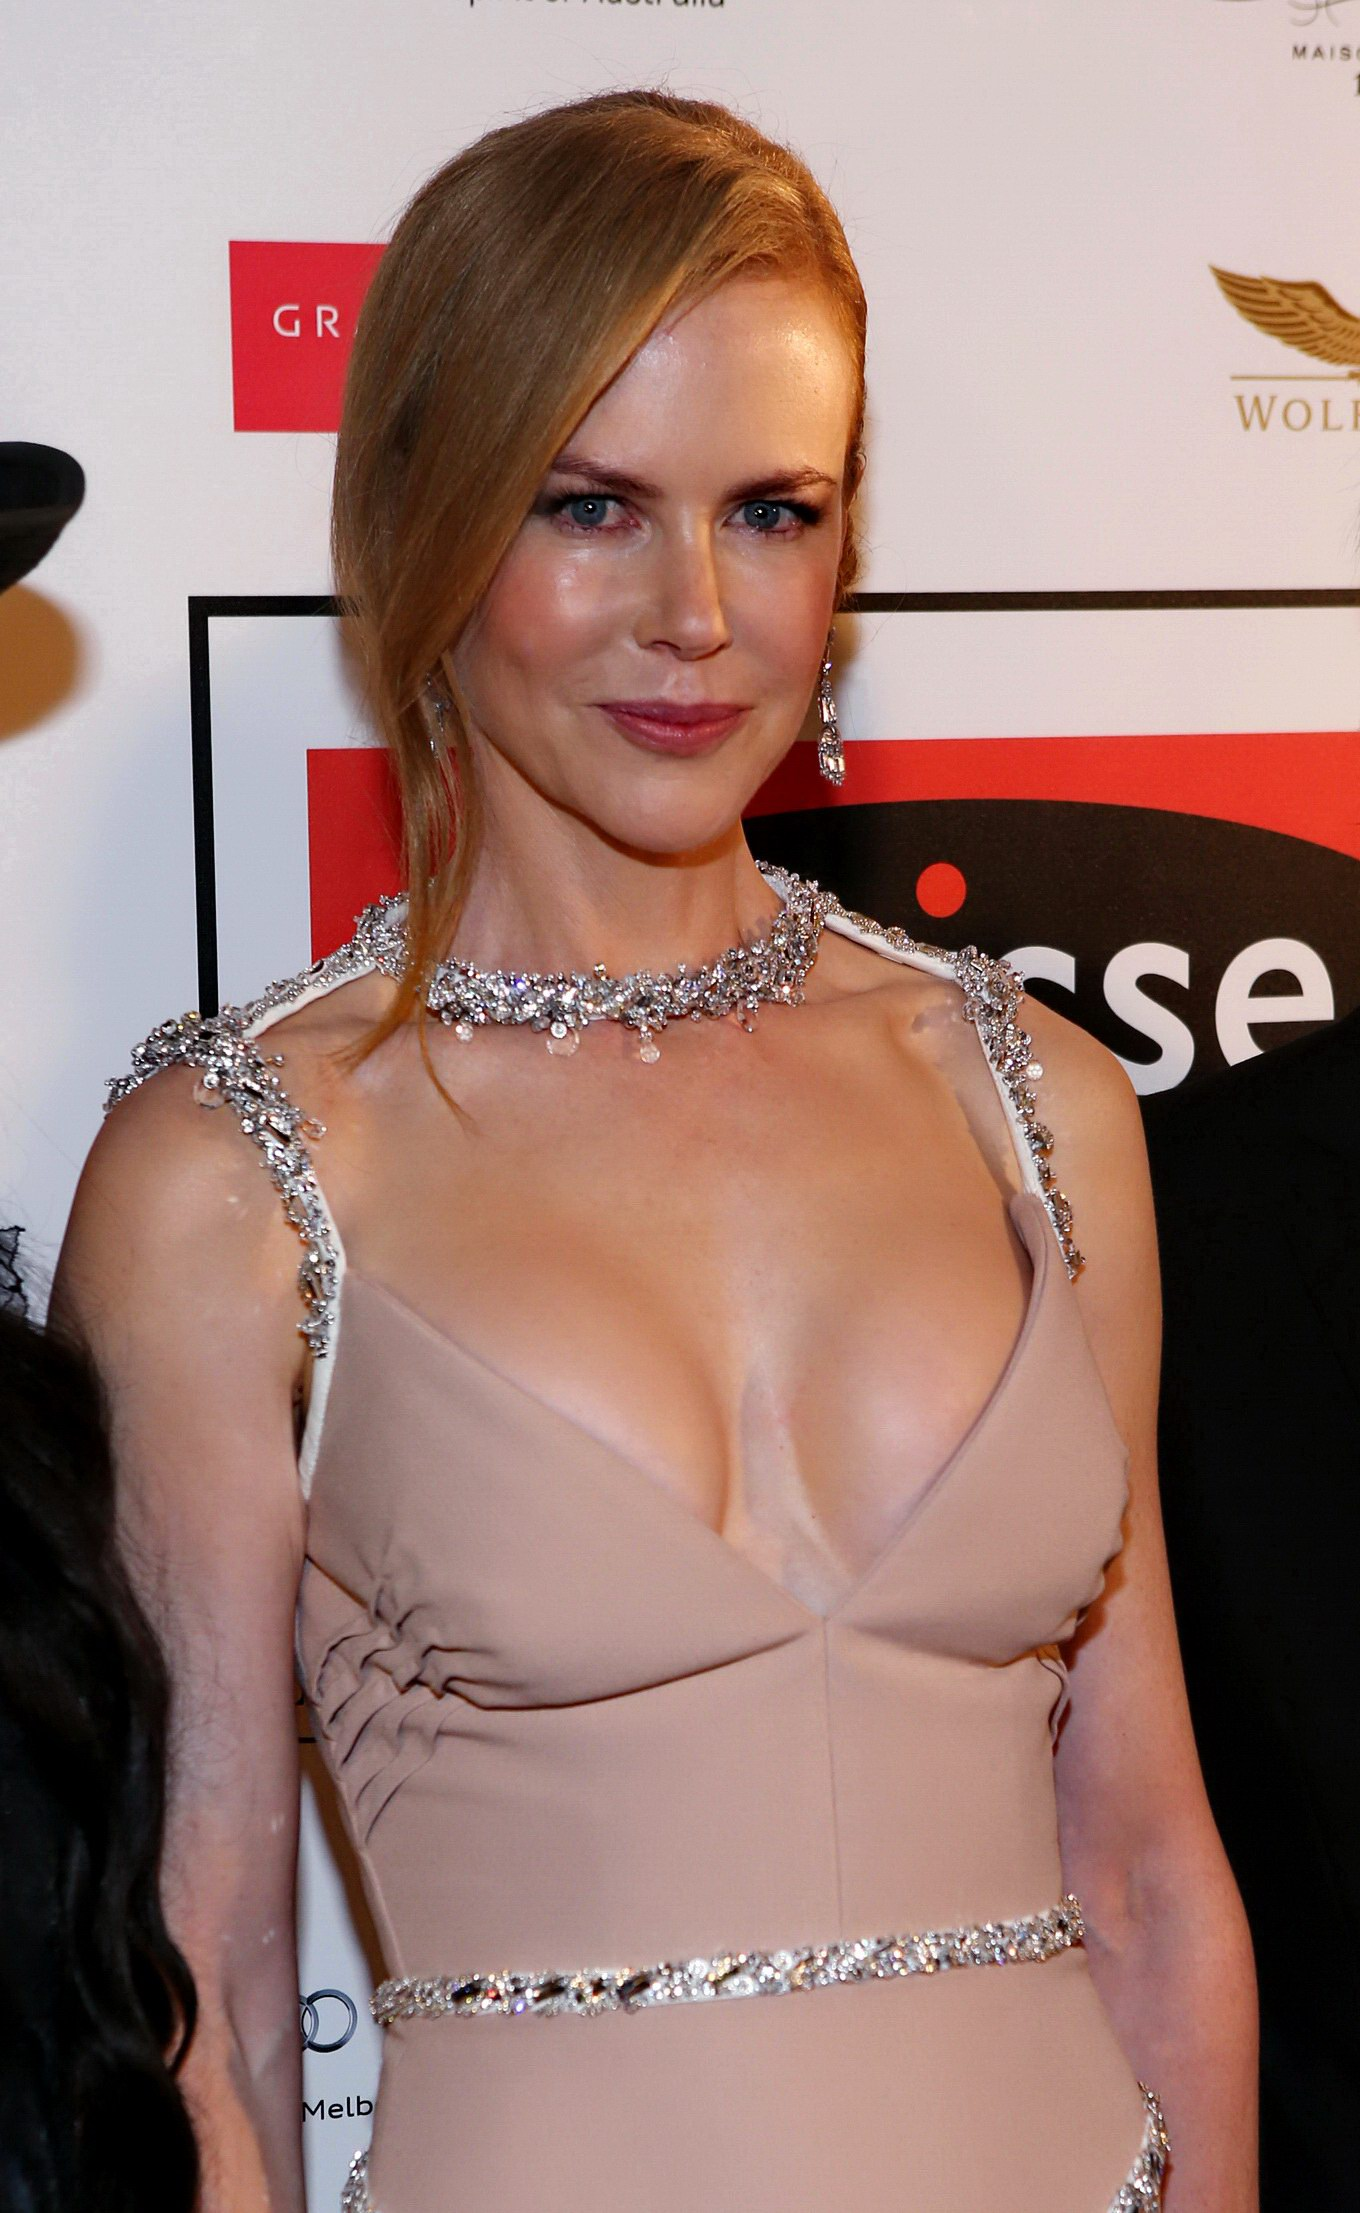 Nude Photos Of Nicole Kidman